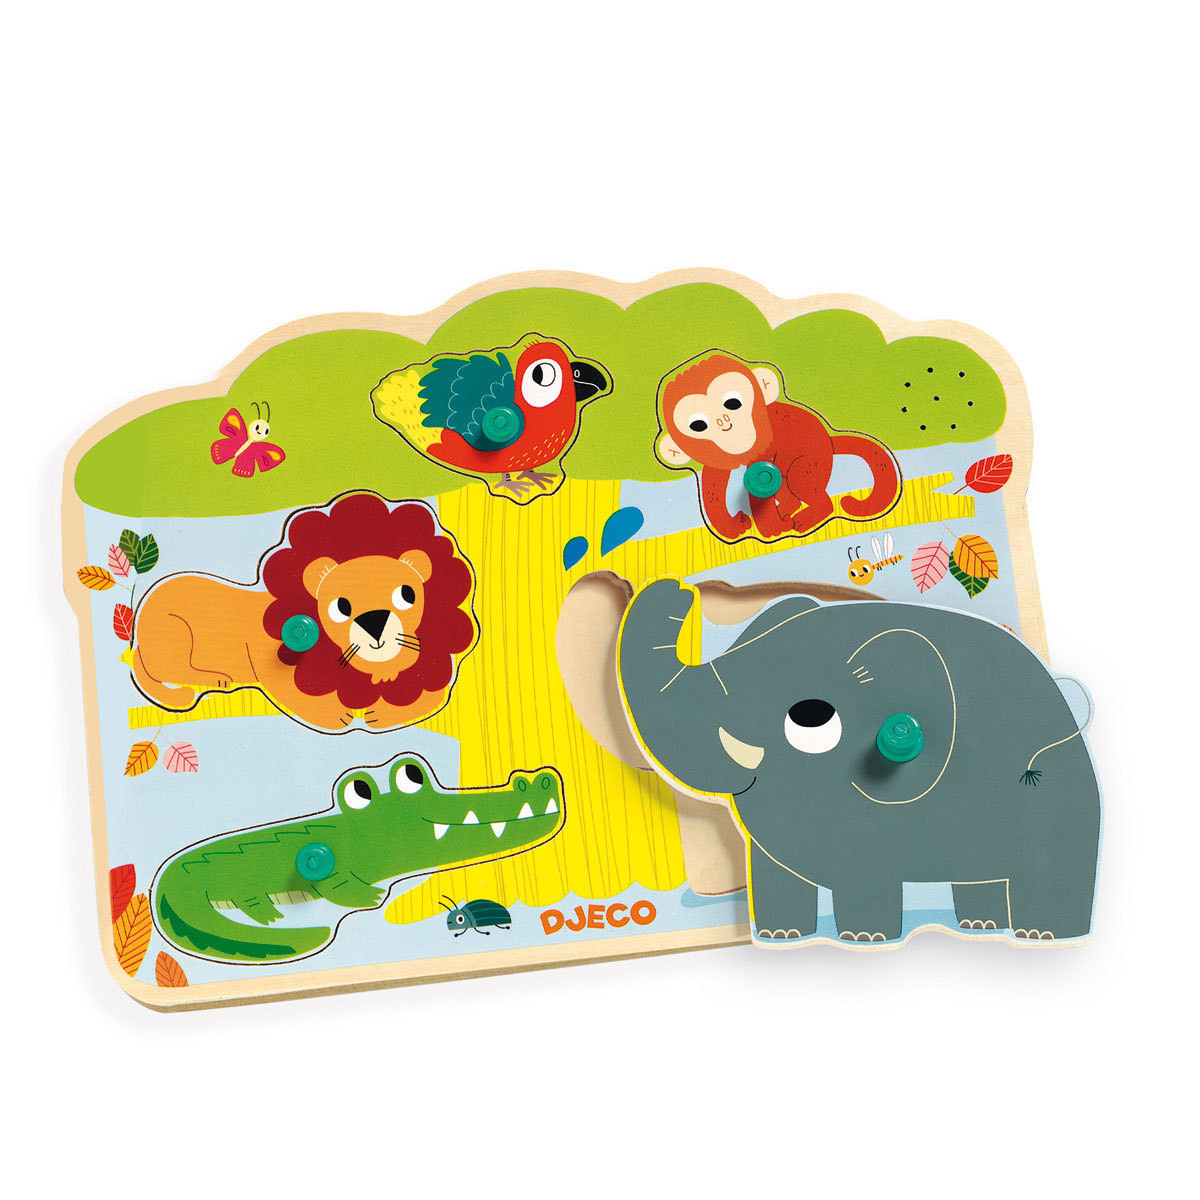 Mes premiers jouets Puzzle Sonore - Baobab Puzzle Sonore - Baobab